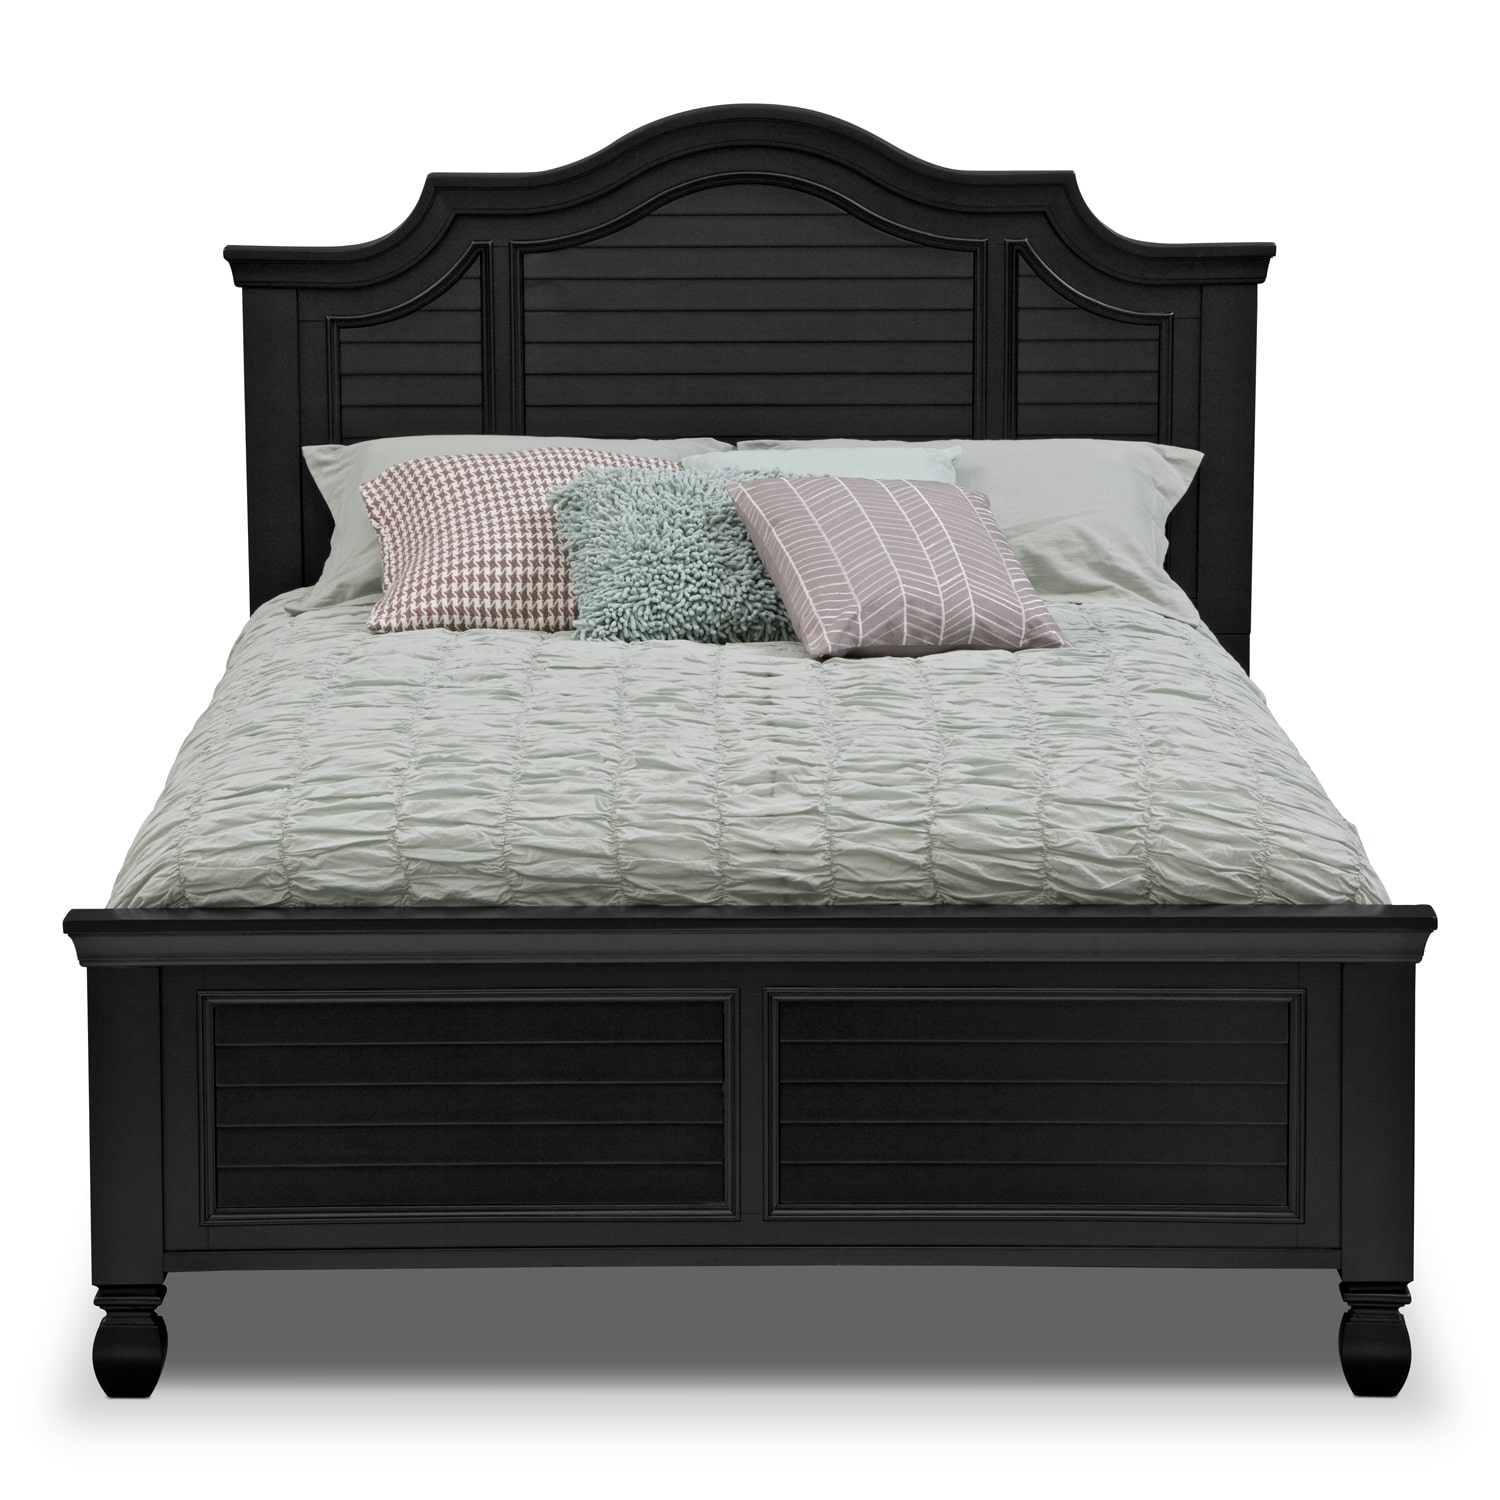 Magnolia Black Queen Bed